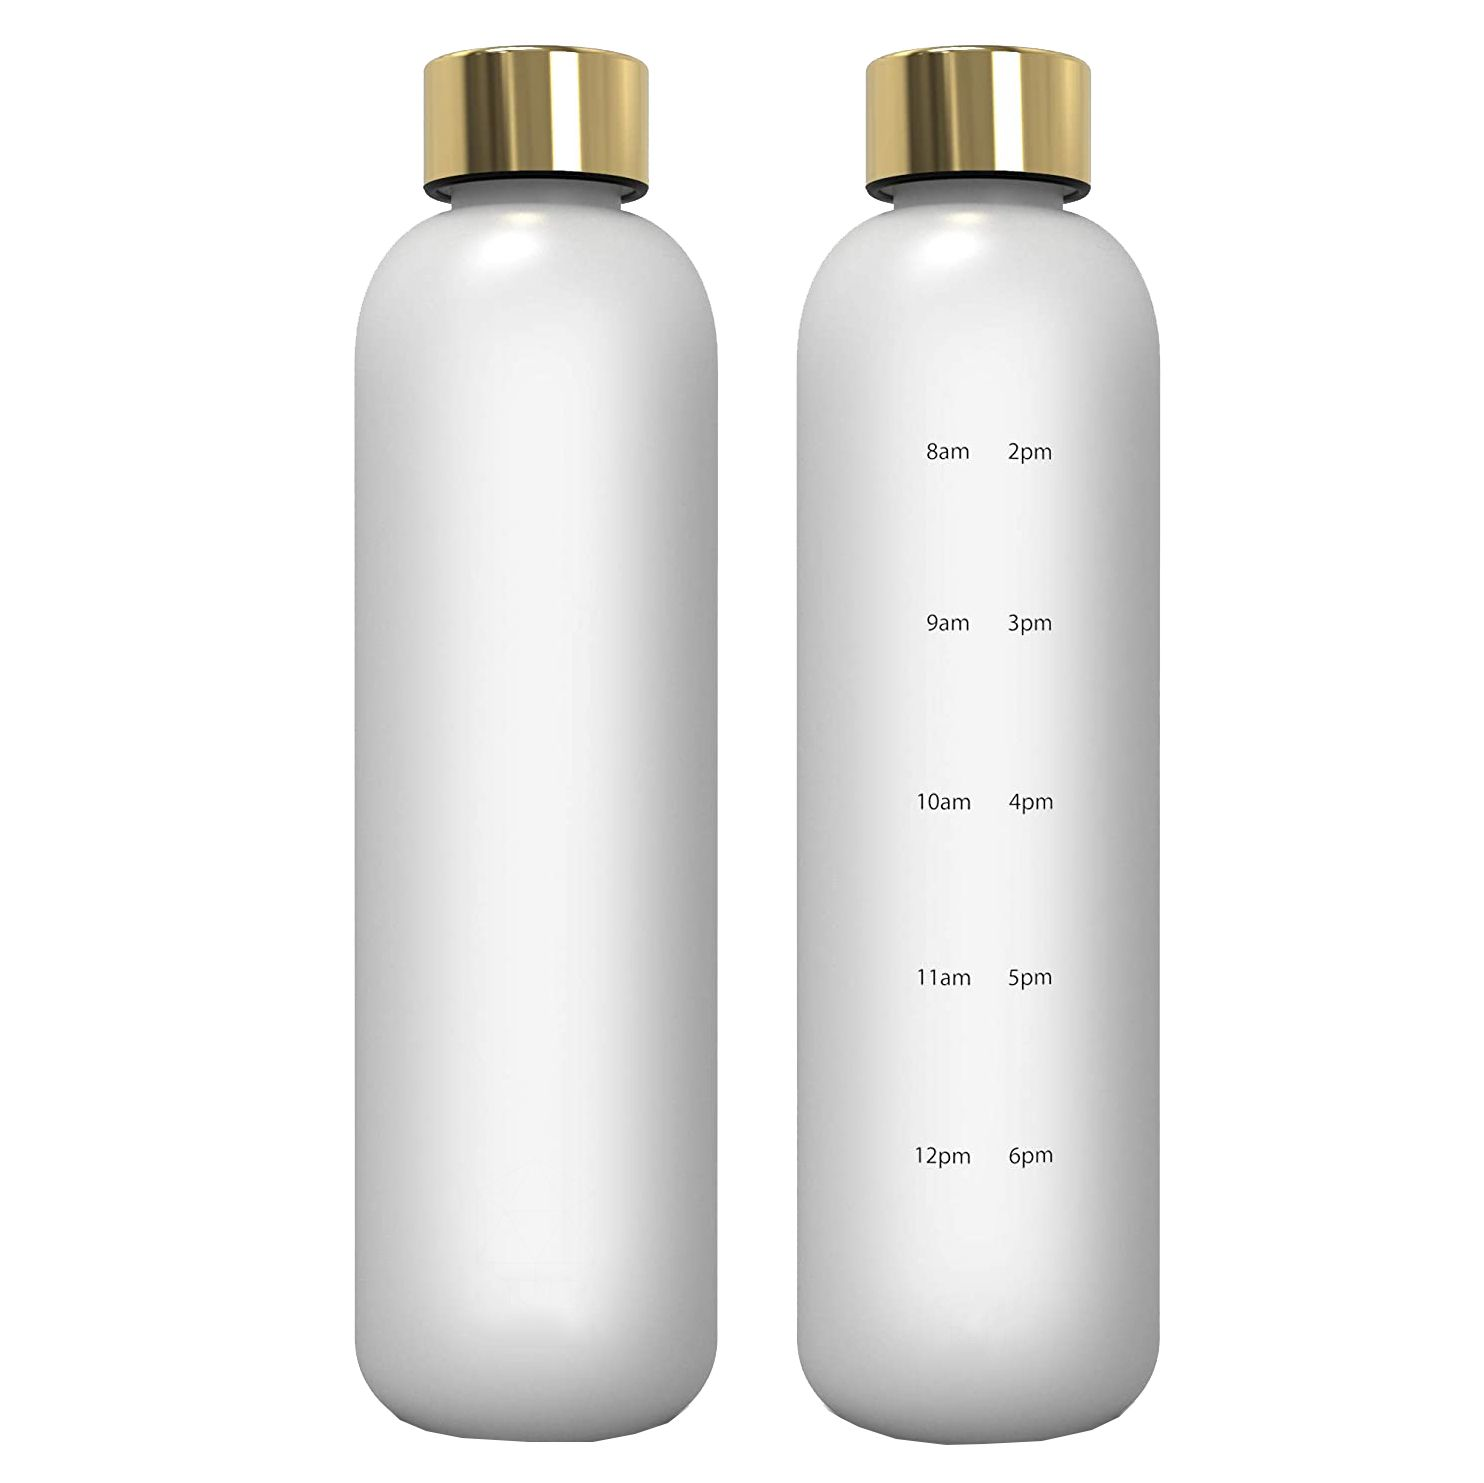 Custom Logo 1 Liter Drinking Water Bottle Frosted Glass Water Bottle Buy Frosted Glass Water Bottle Custom Water Bottle 1 Liter Water Bottle Product On Alibab In 2020 Custom Water Bottles Glass